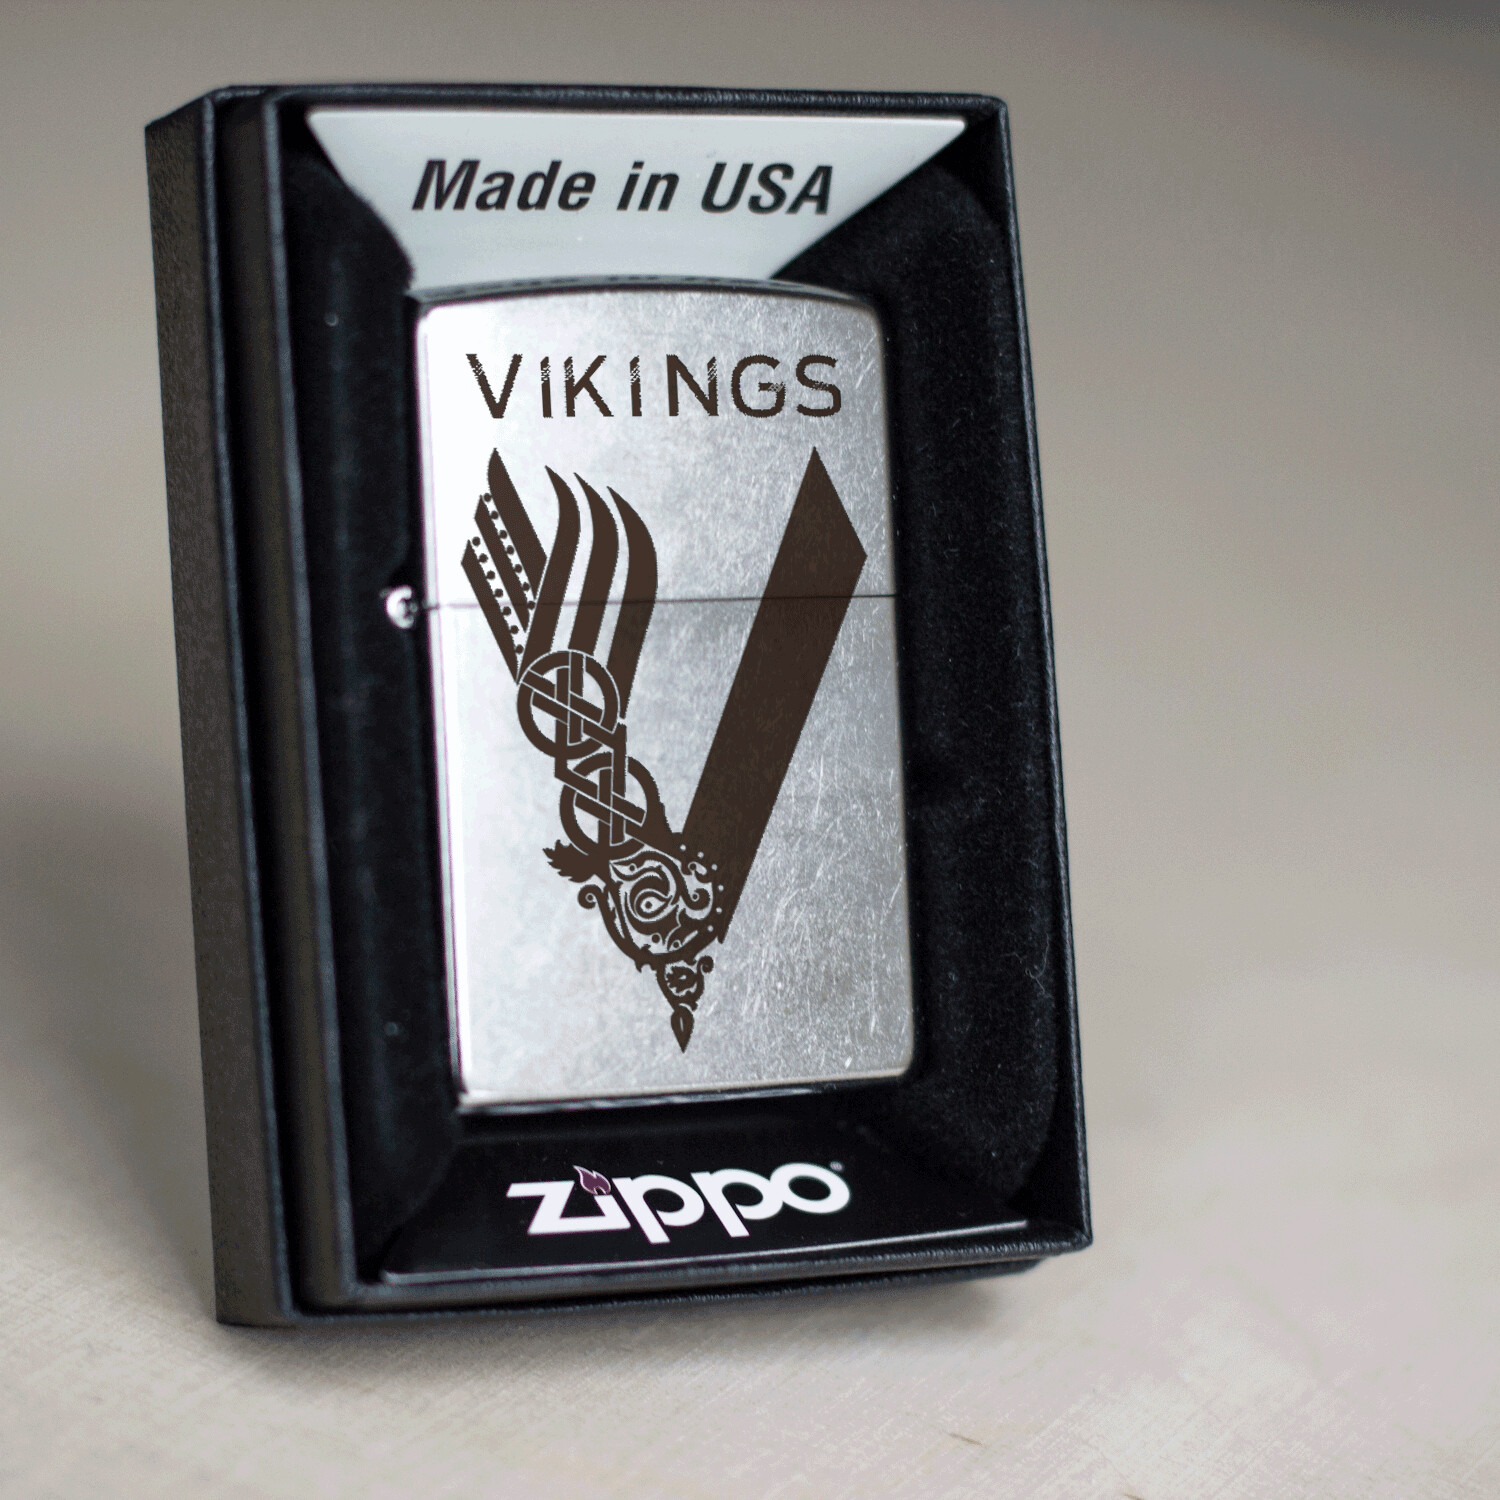 Vikings series custom Zippo 207 lighter / Ragnar Lodbrok / Bjorn Ironside